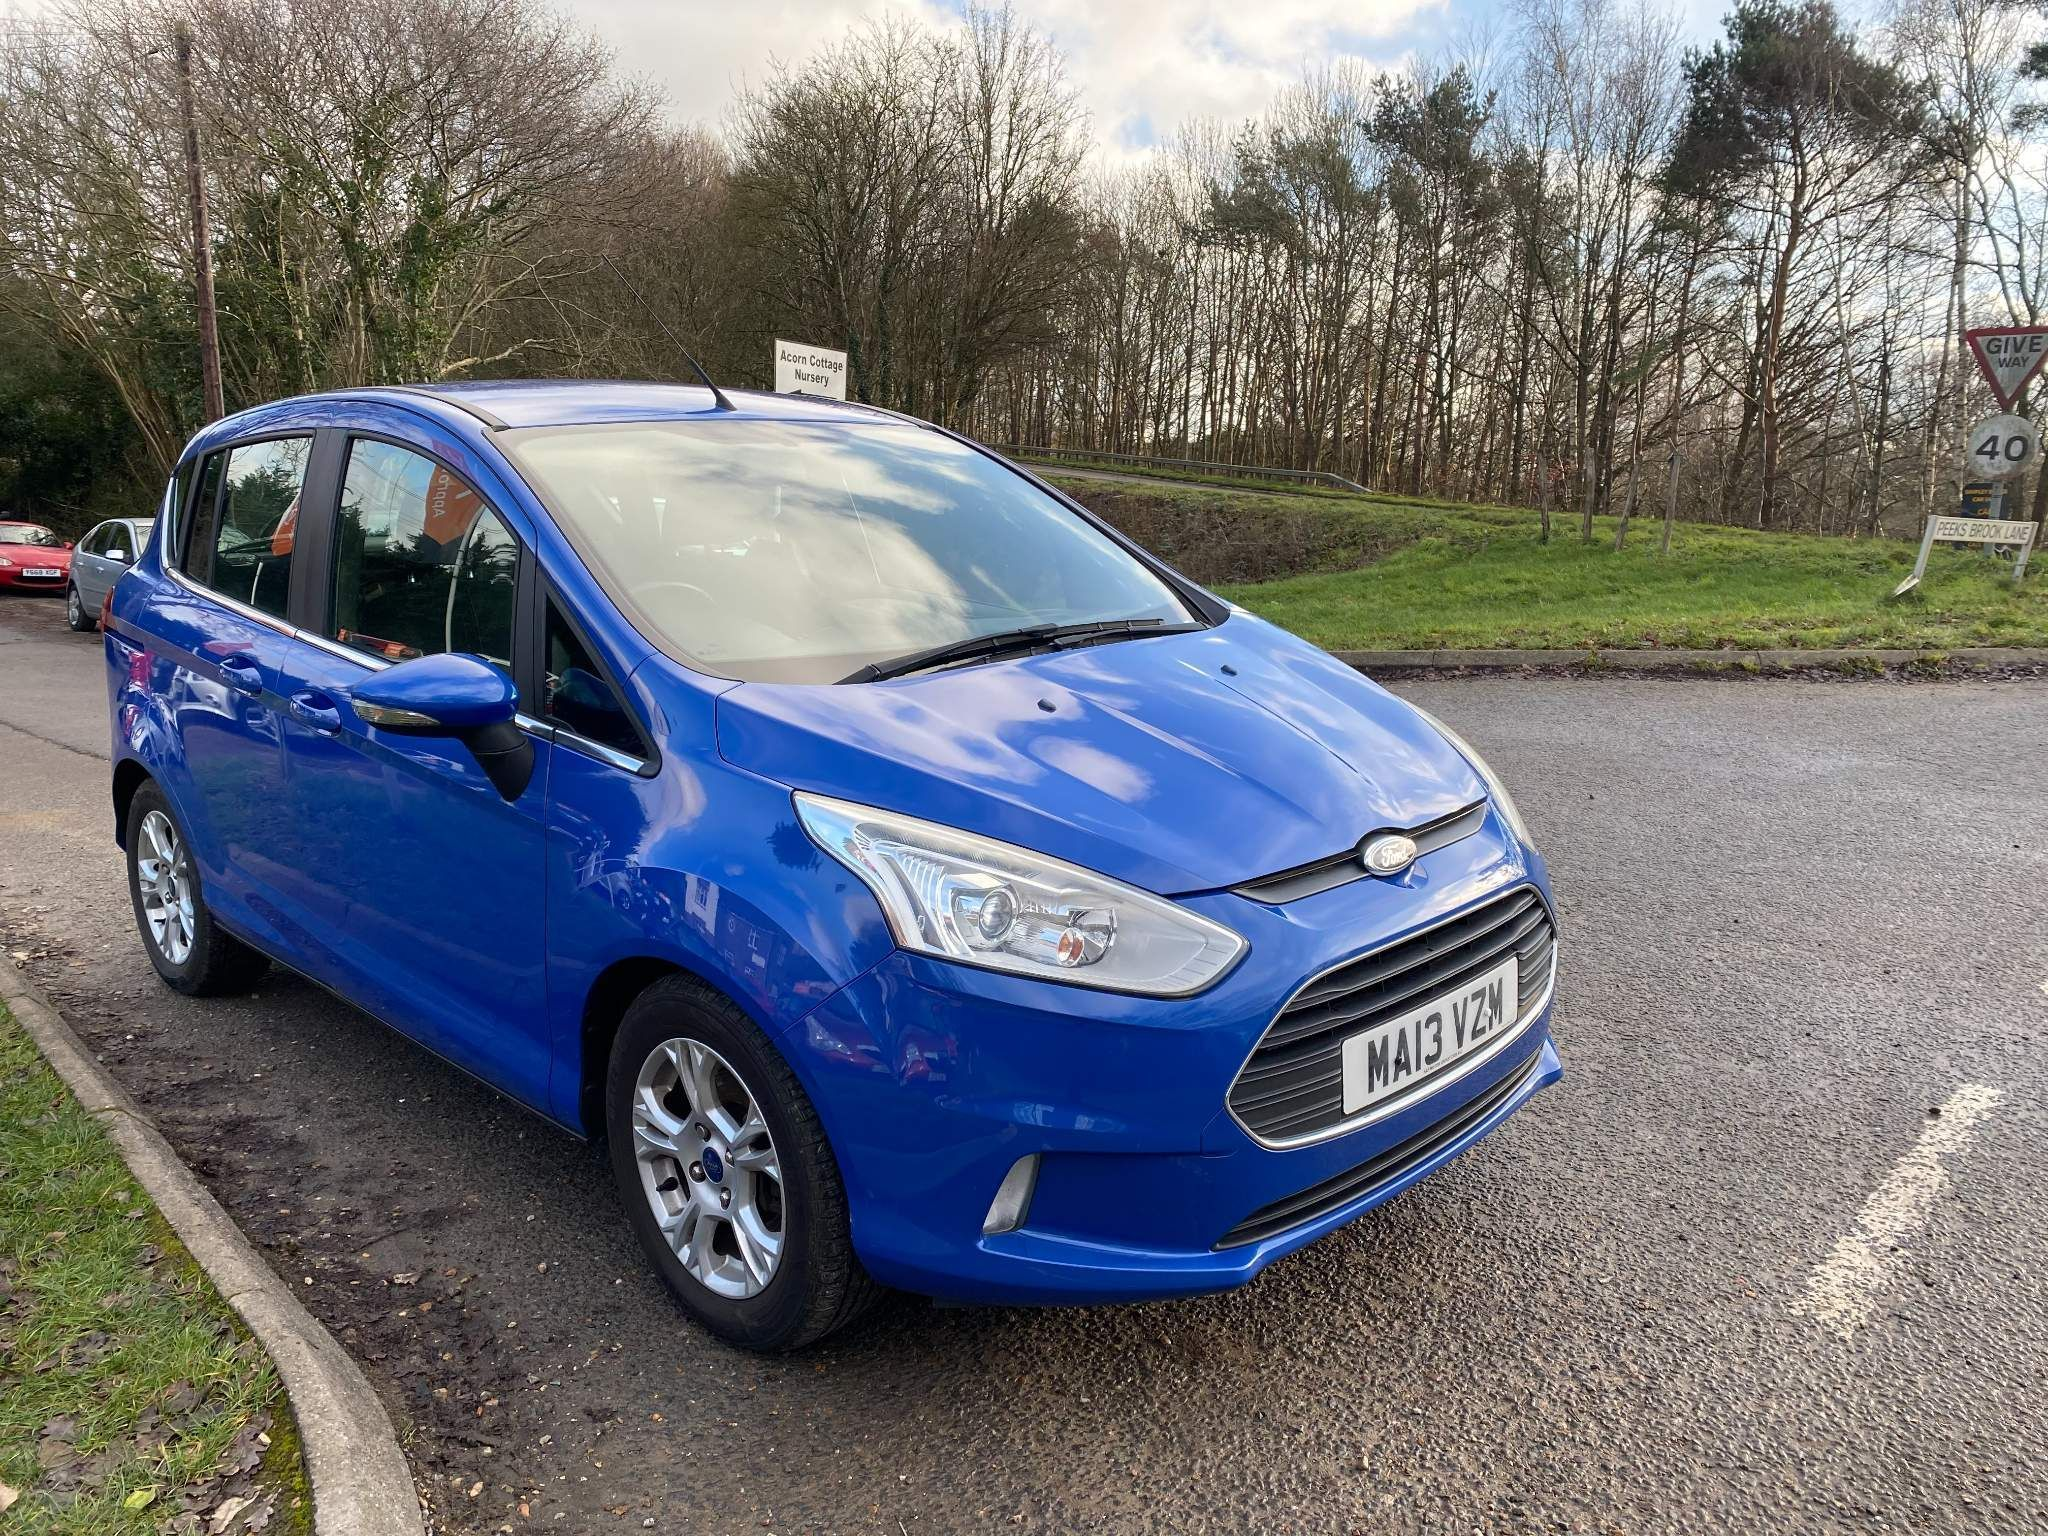 Used Ford B-Max for sale